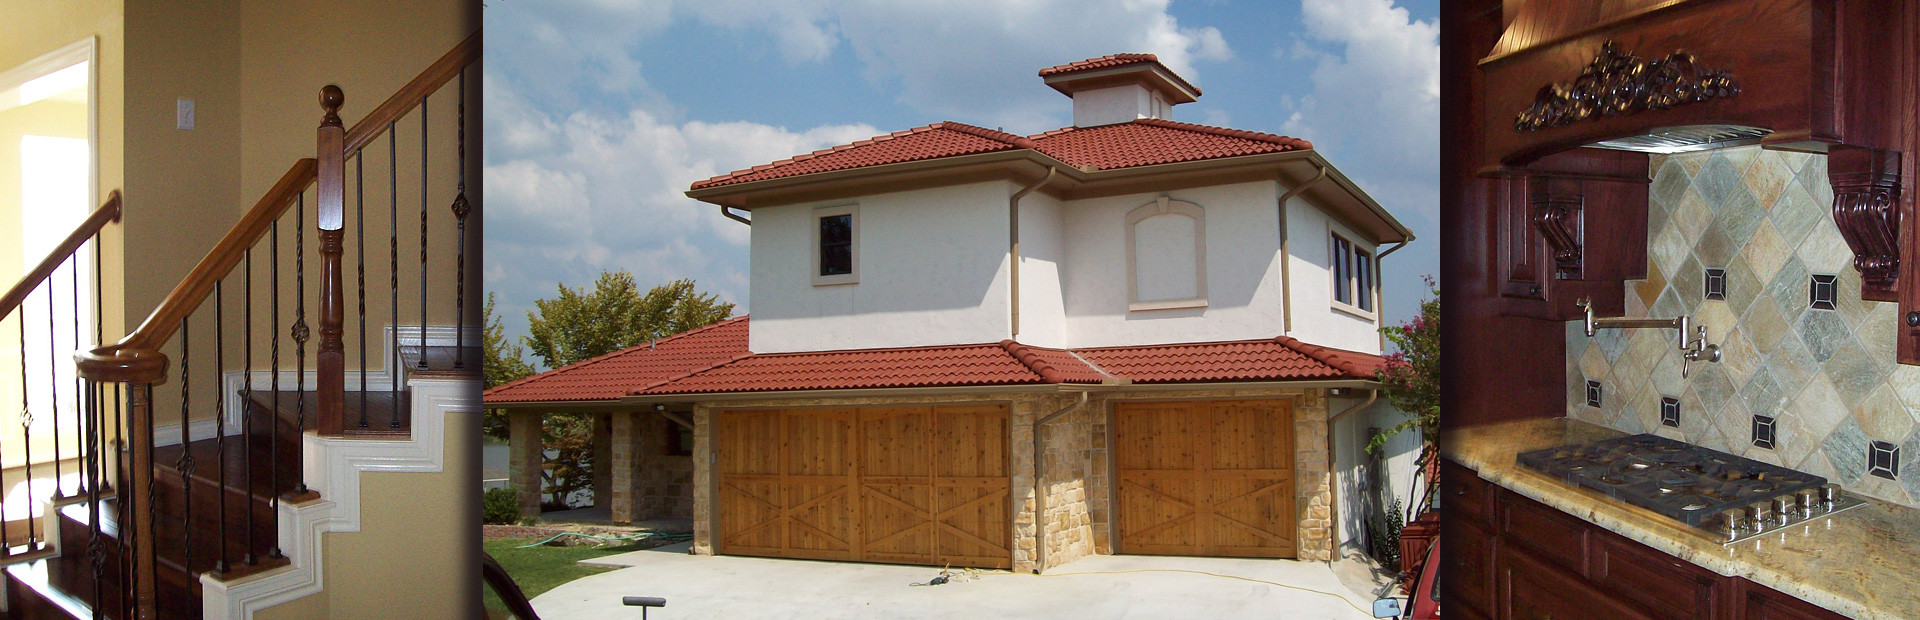 New Home Construction - Denton, Texas